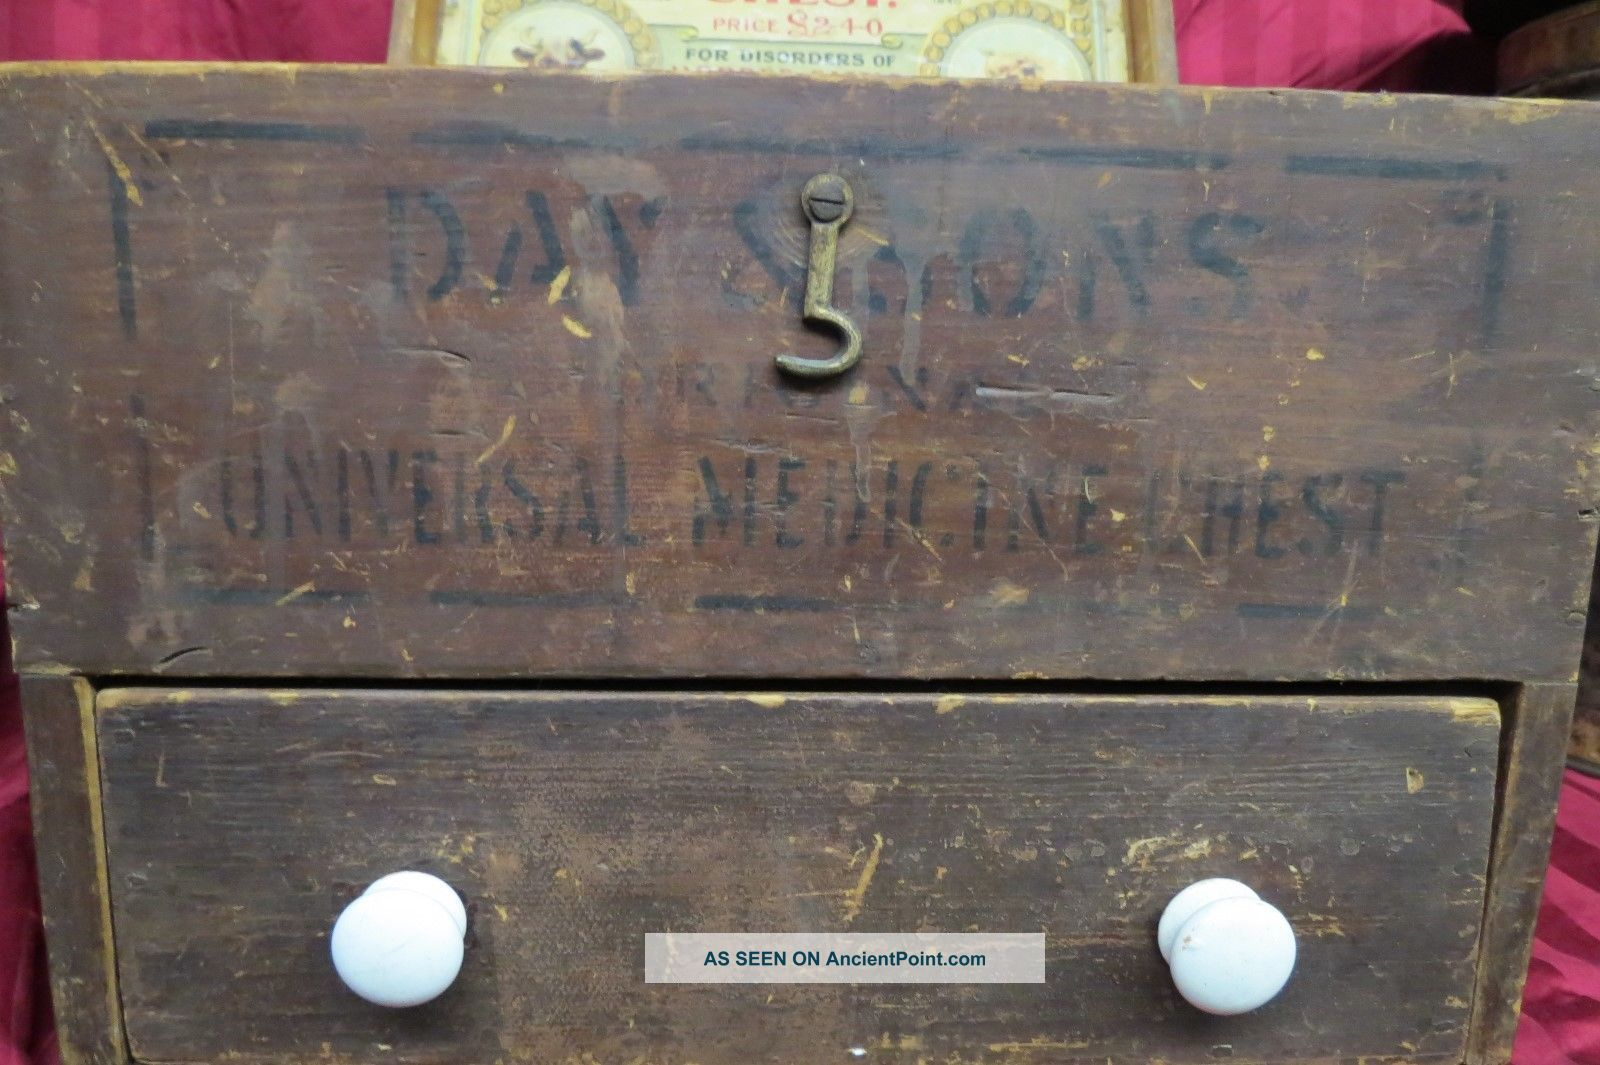 Antique Day & Sons Universal Animal Medicine Chest Veternary Wood Chest W/ Adver 1900-1950 photo